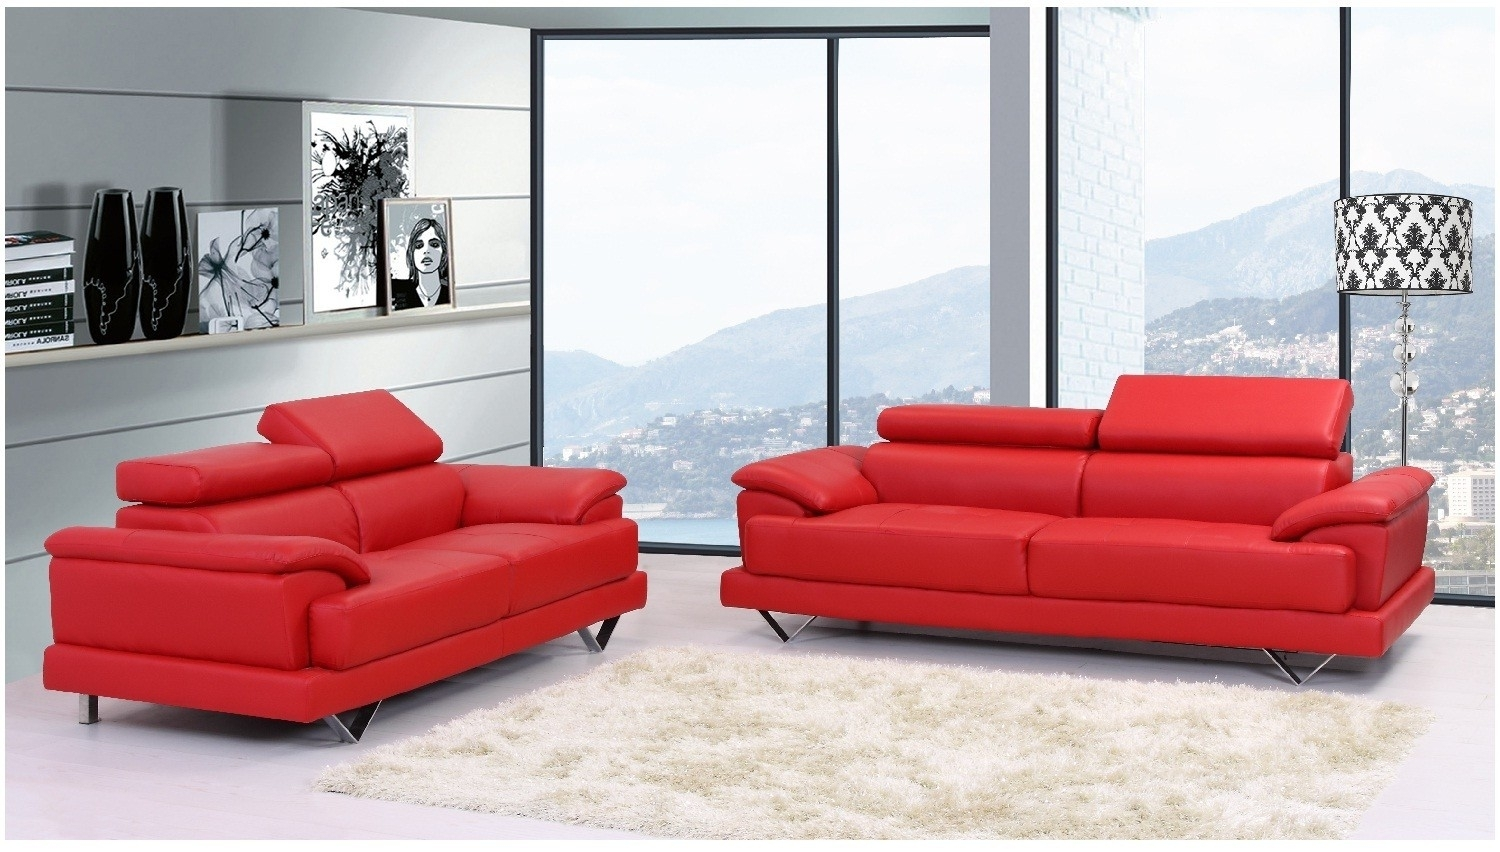 Perfect Red Leather Sofas 90 For Contemporary Sofa Inspiration With With Regard To Red Leather Sofas (View 14 of 15)